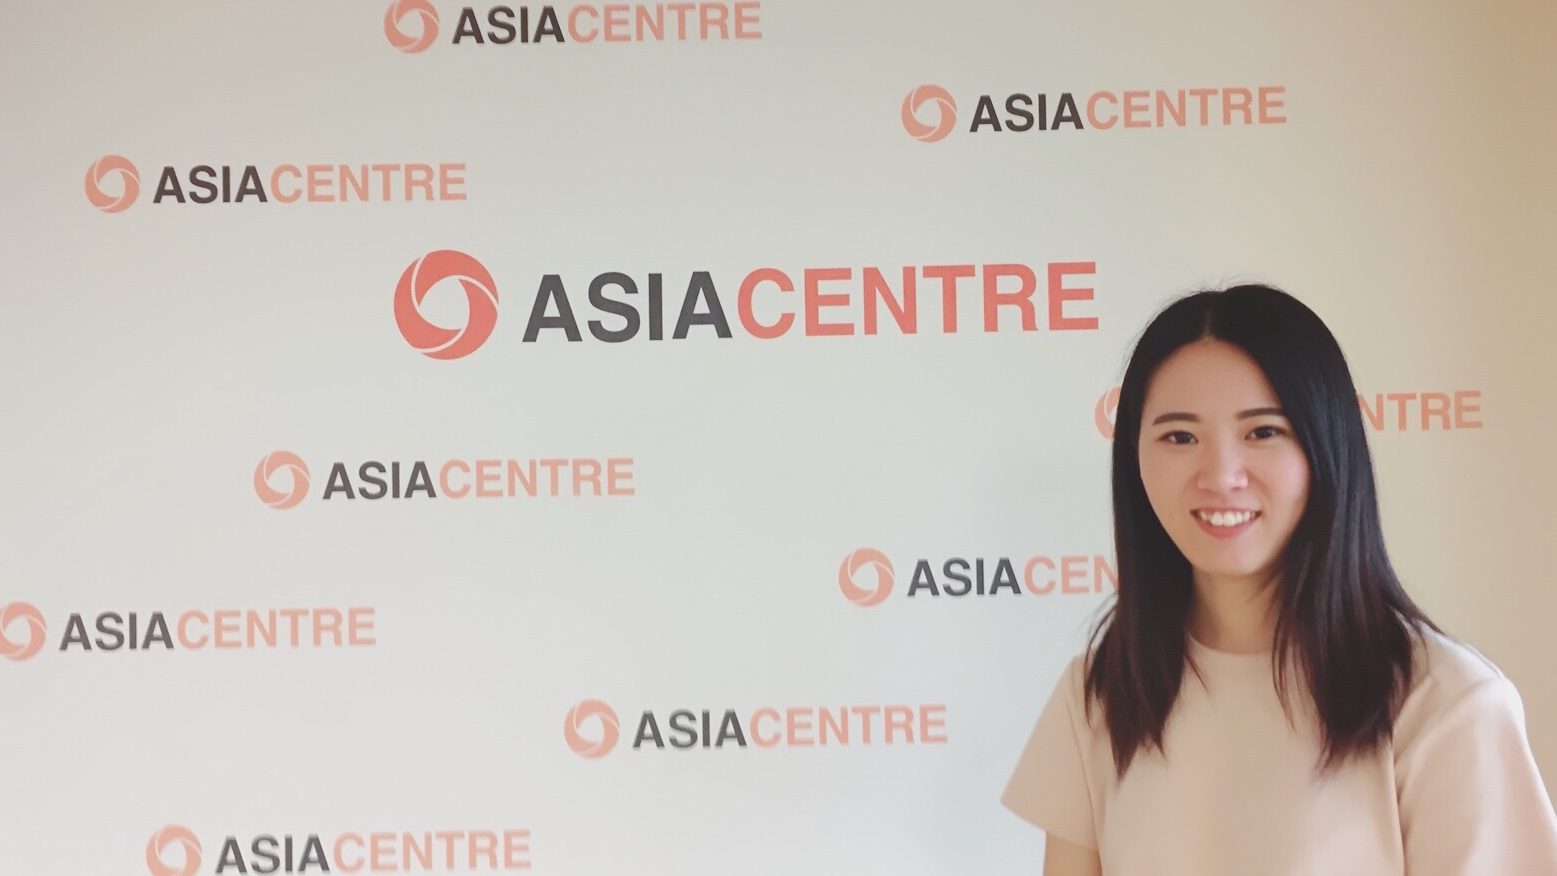 Kasumi_intern_asiacentre